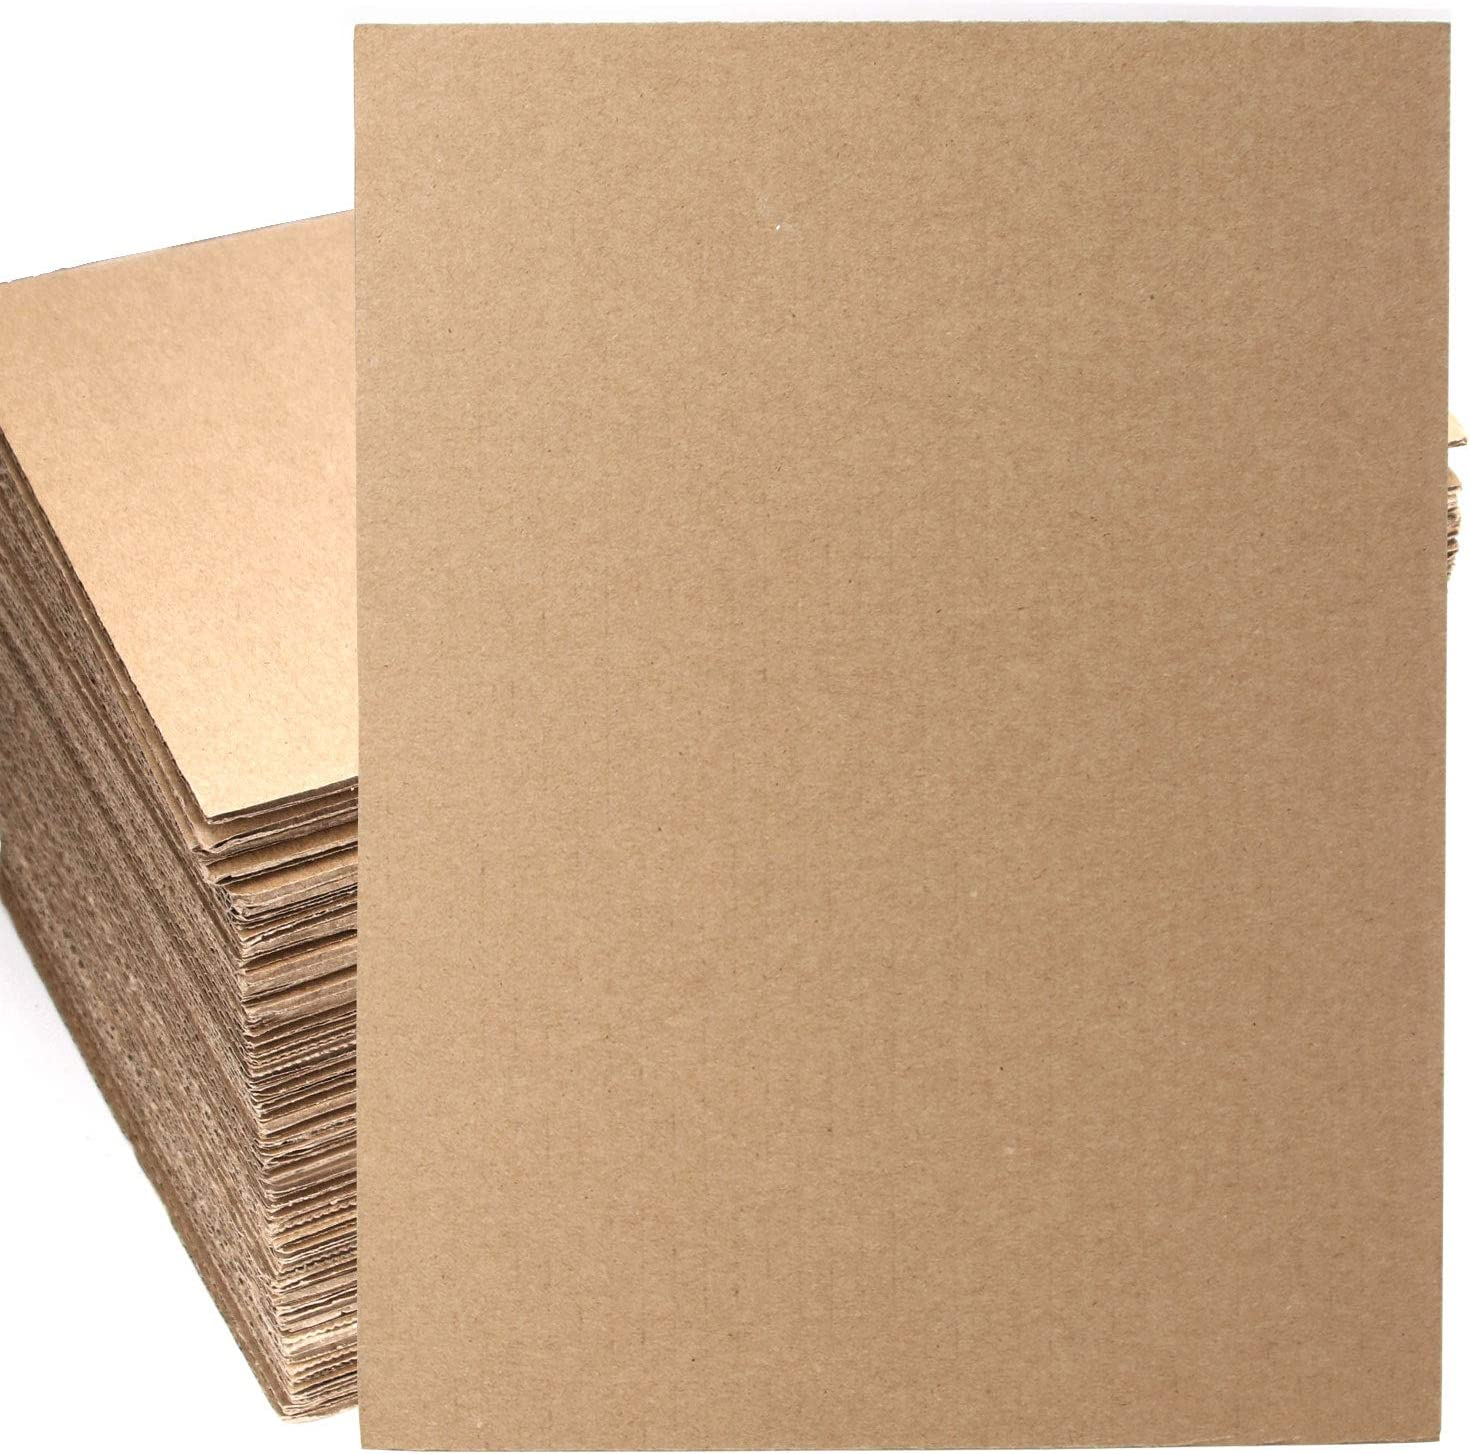 ZOENHOU 50 PCS 11 x 8.5 Inch Corrugated Cardboard Sheets, Single Wall Cardboard Inserts, Flat Cardboard Squares Separators, Packing Paper Sheets for Mailing, DIY Crafts, Art Projects and More, Brown